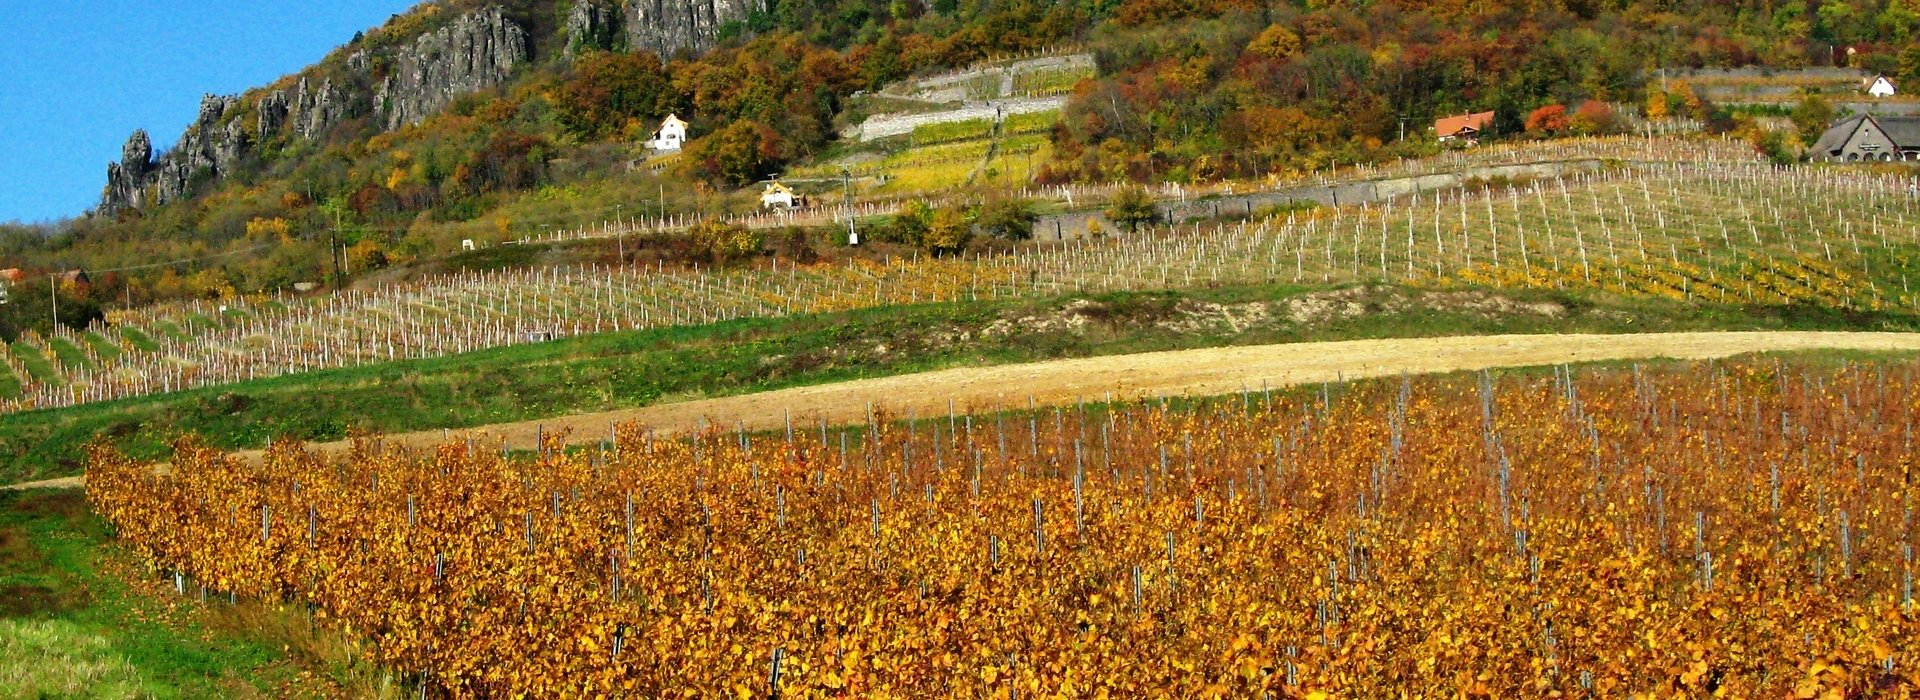 Tokaj Wineregion